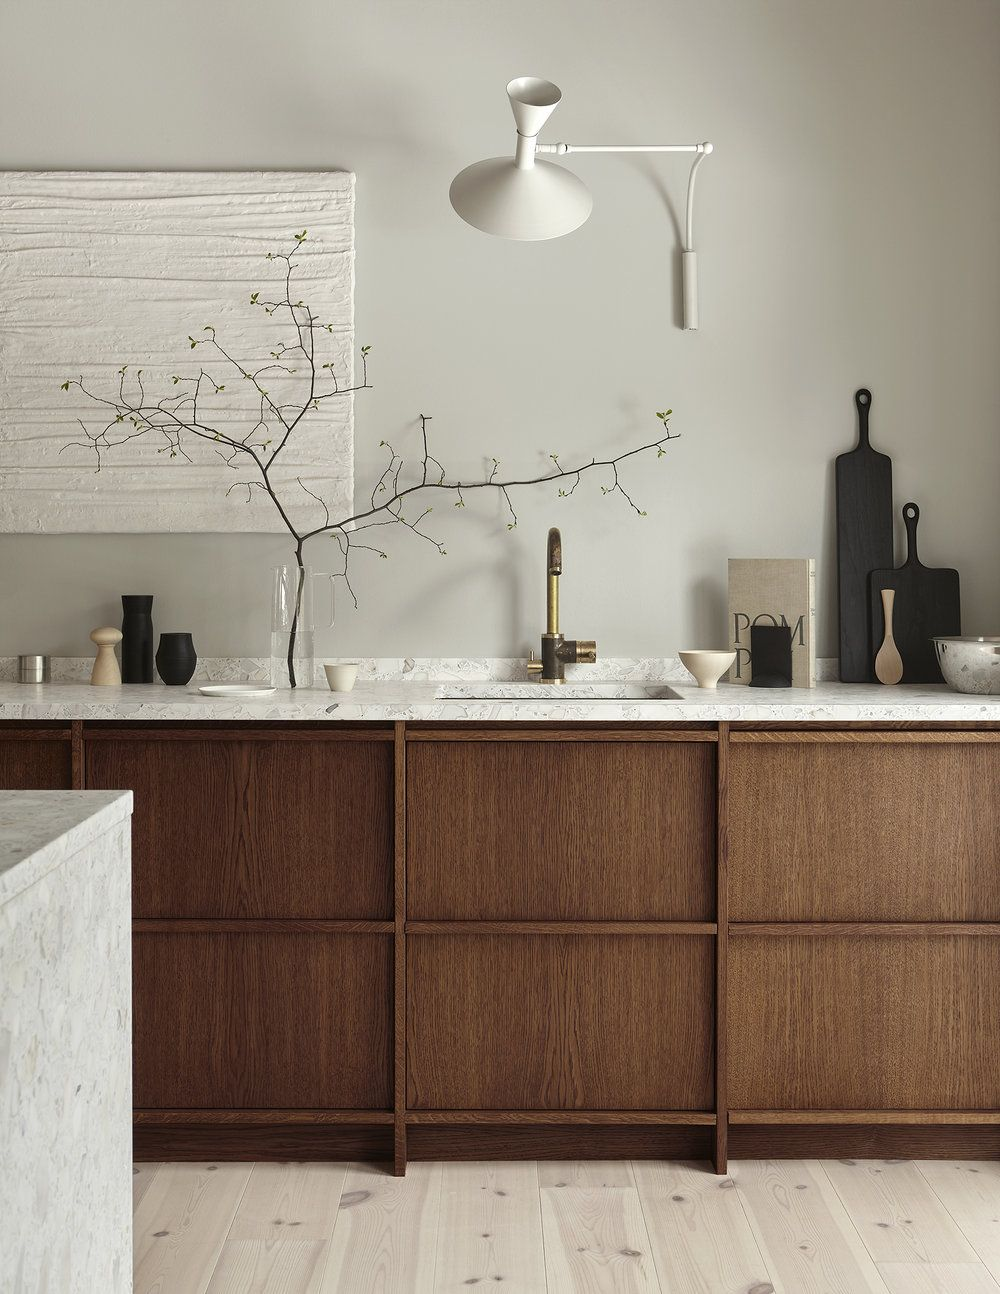 mar 27 inspired in japan minimalist style the new kitchen from rh pinterest ca